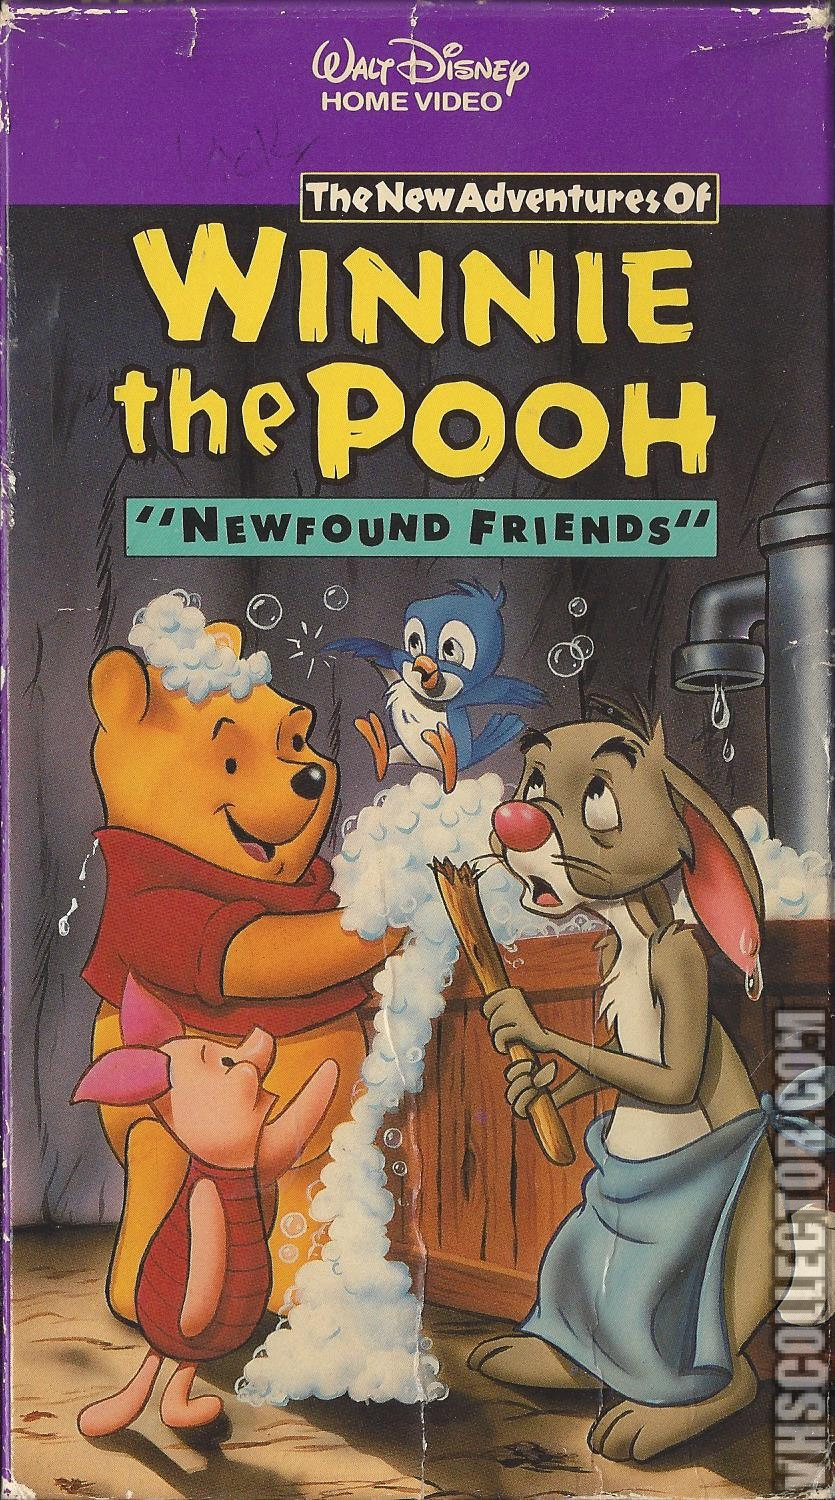 The New Adventures of Winnie the Pooh: Newfound Friends  VHSCollector.com